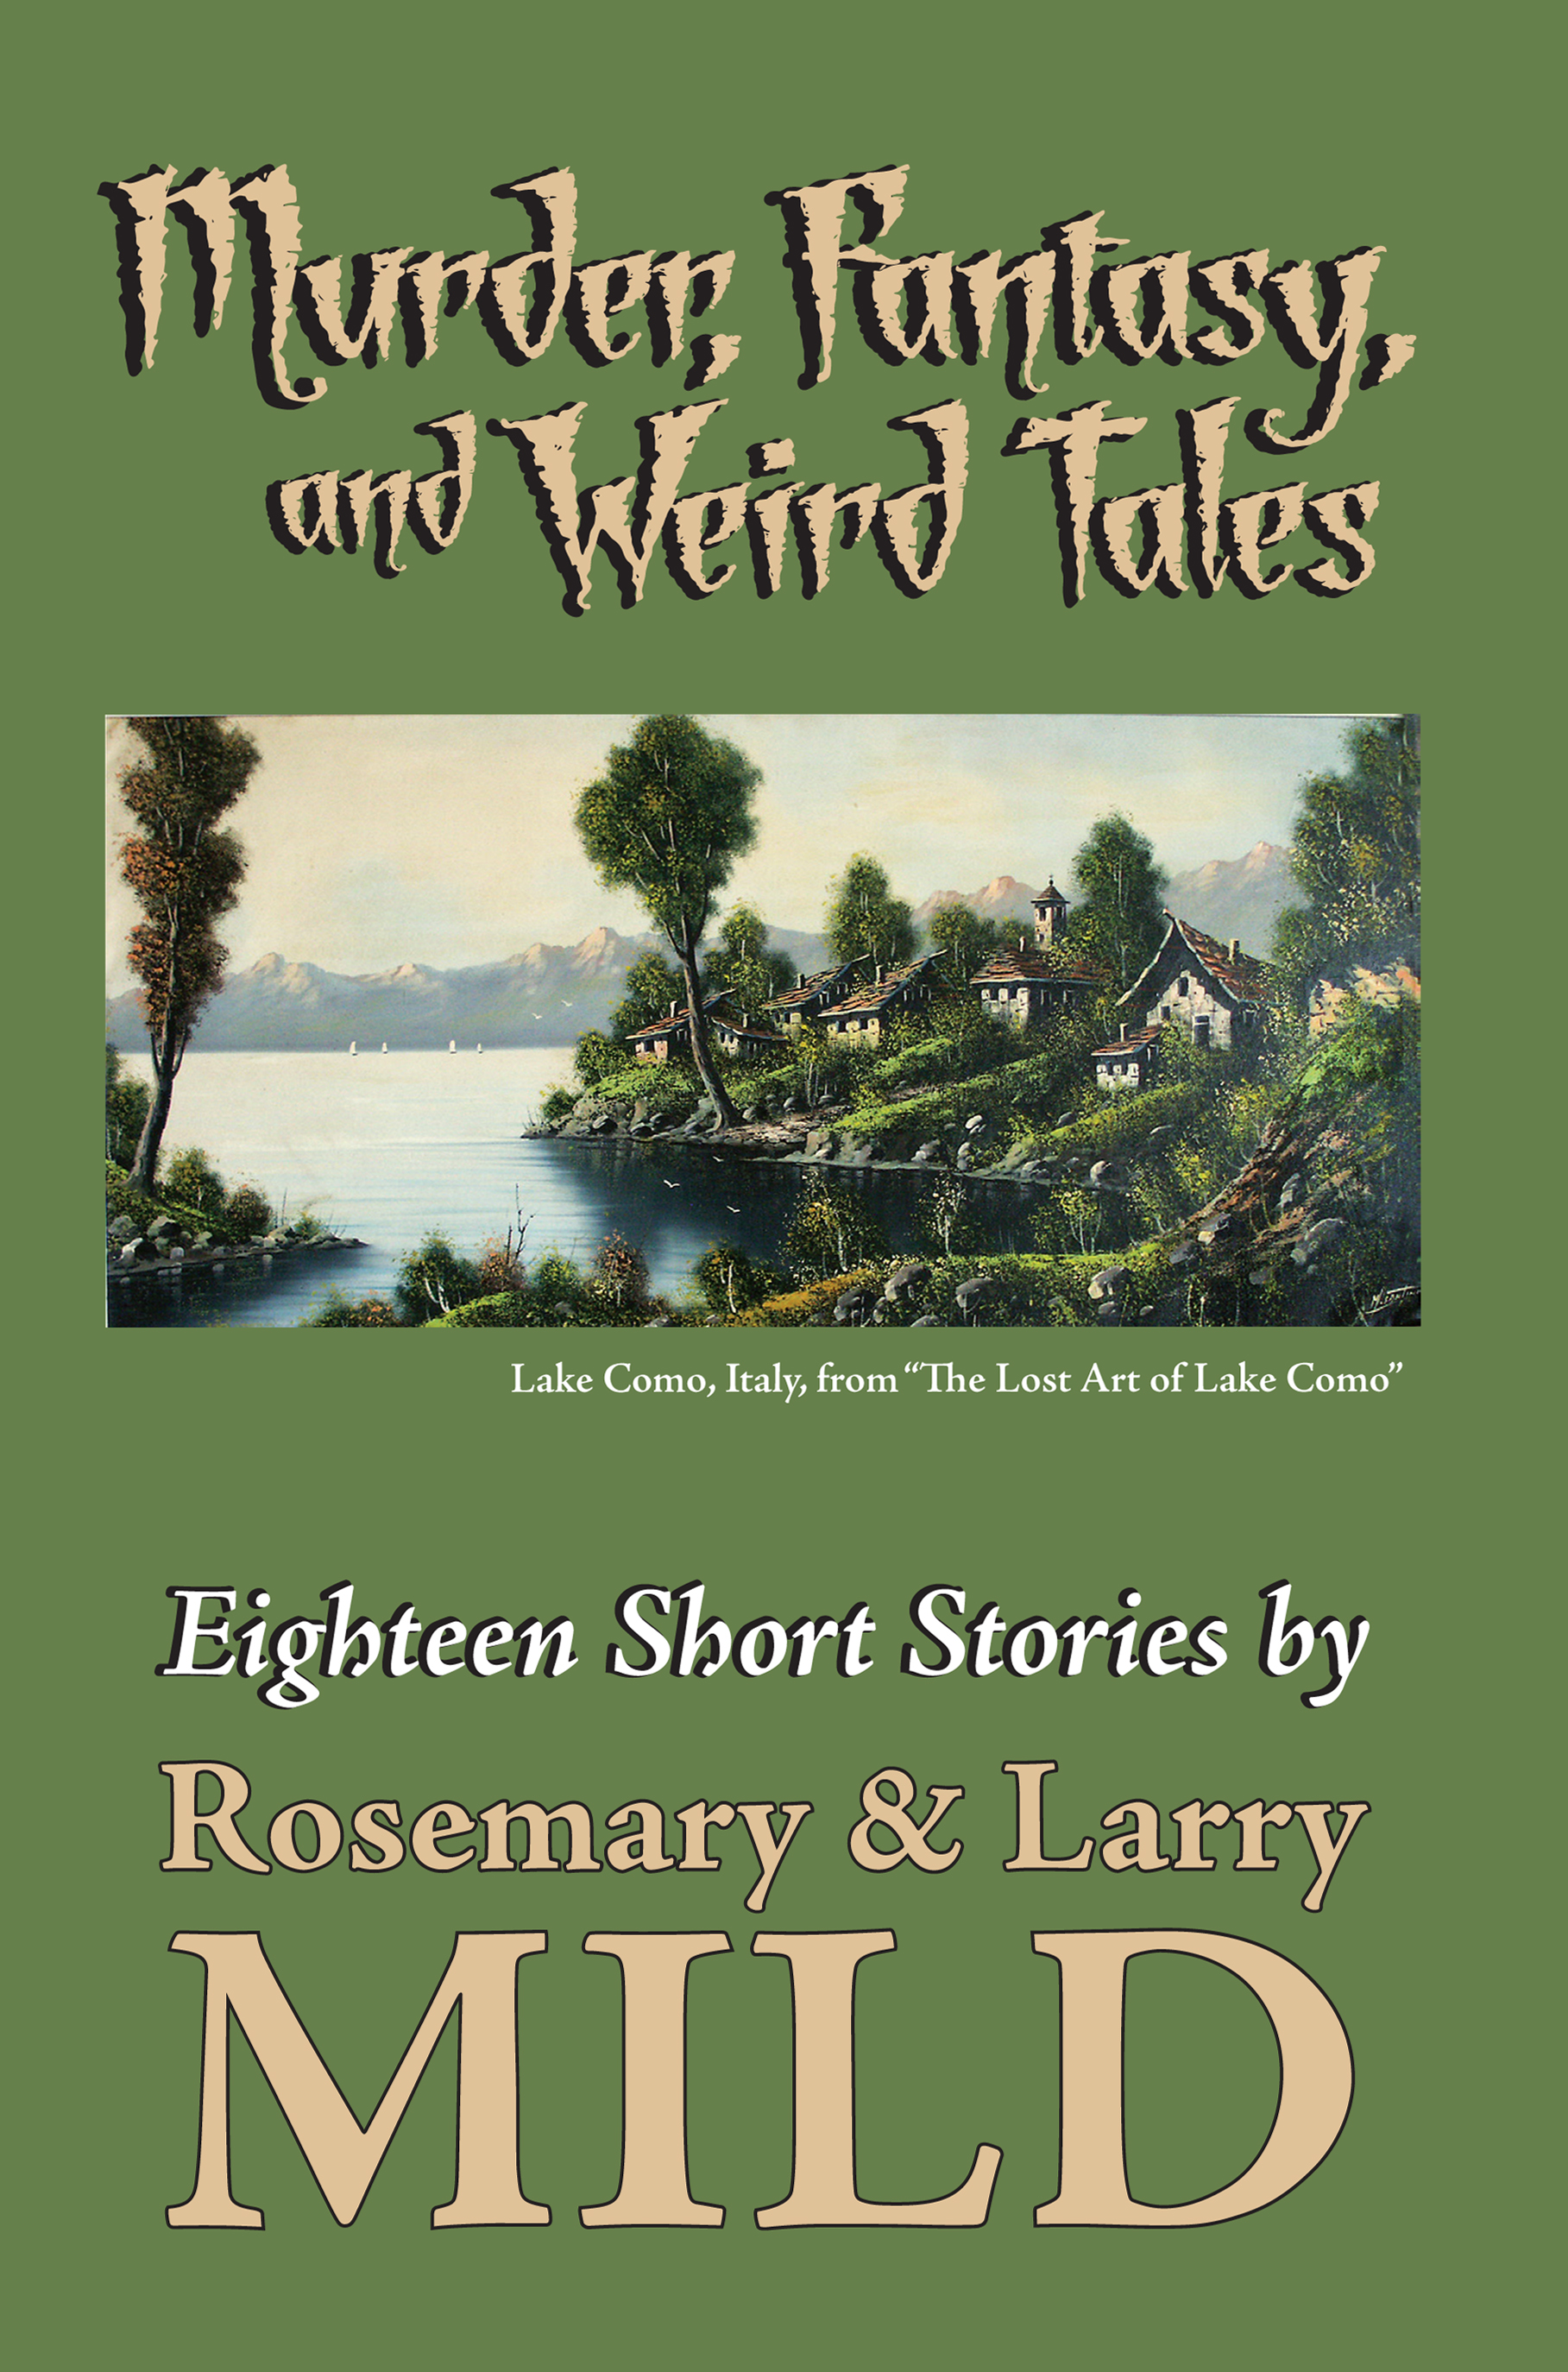 Murder, Fantasy, and Weird Tales by Larry & Rosemary Mild